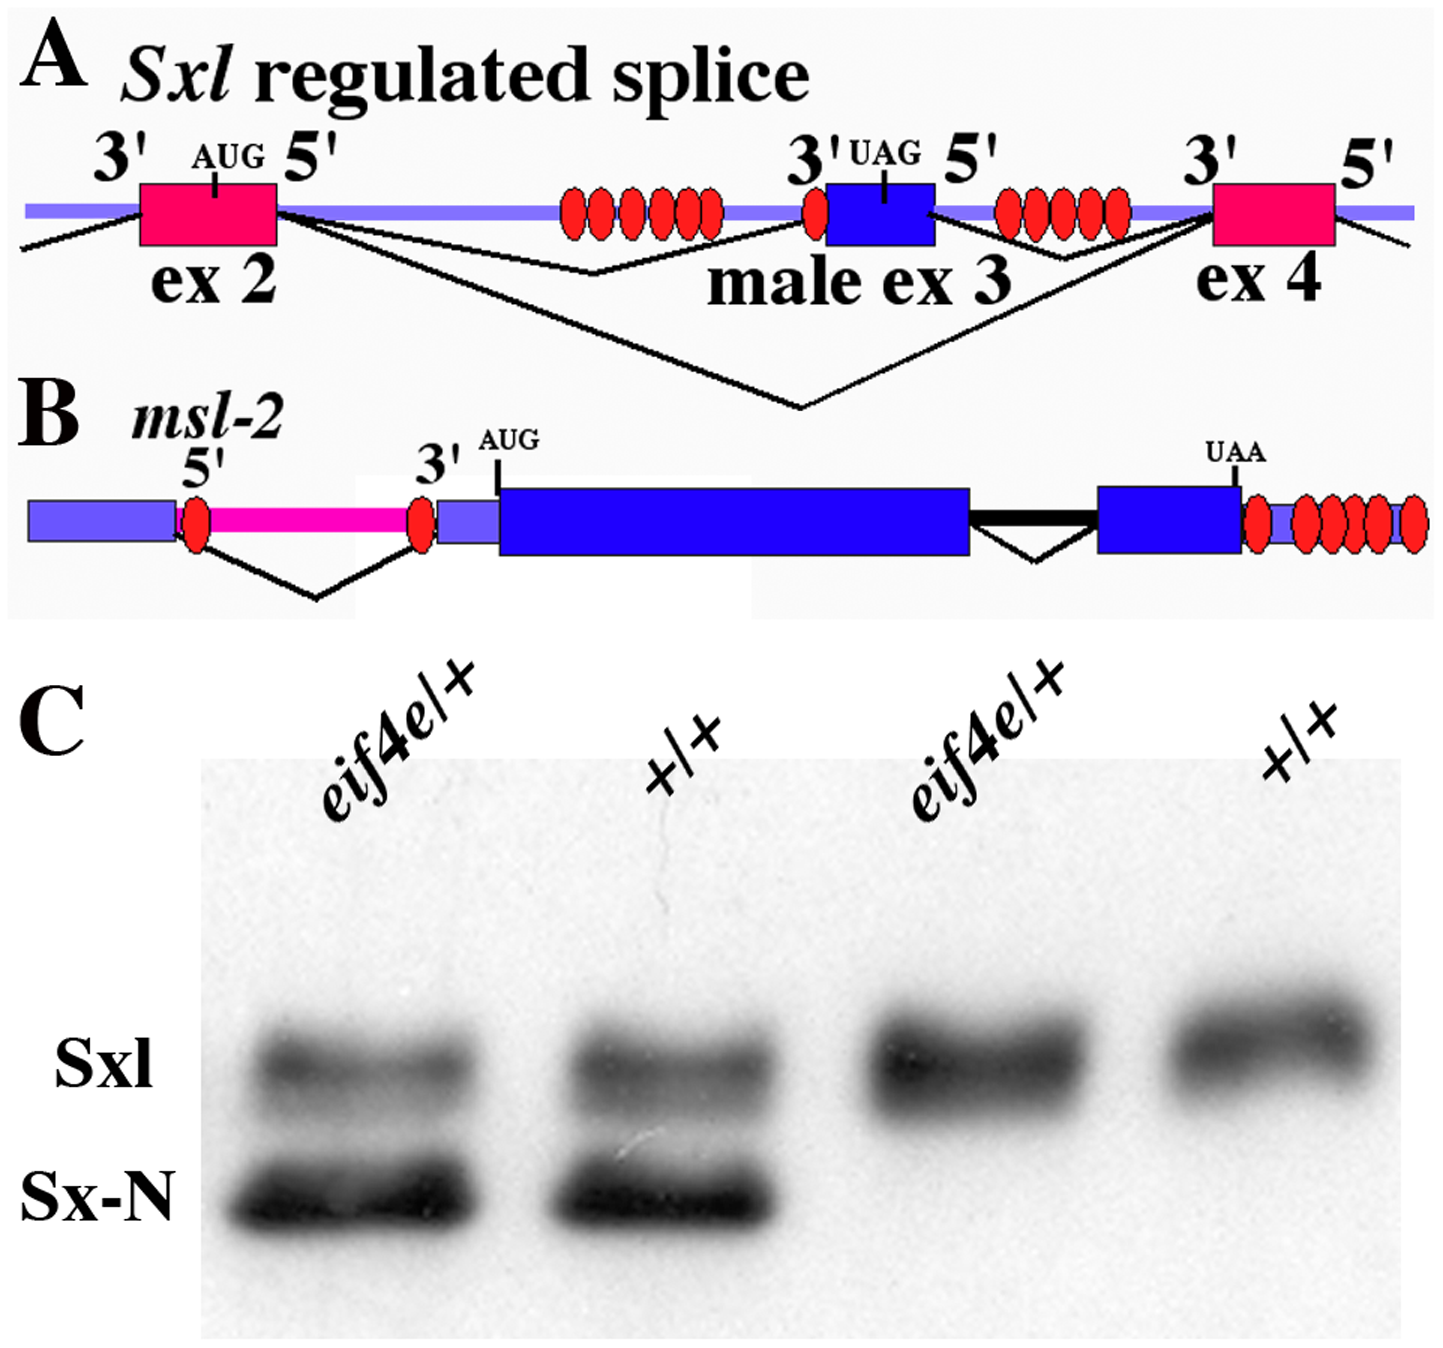 Sx-N protein can repress the translation of endogenous <i>Sxl-Pm</i> mRNAs in an <i>eif4e</i> mutant background.